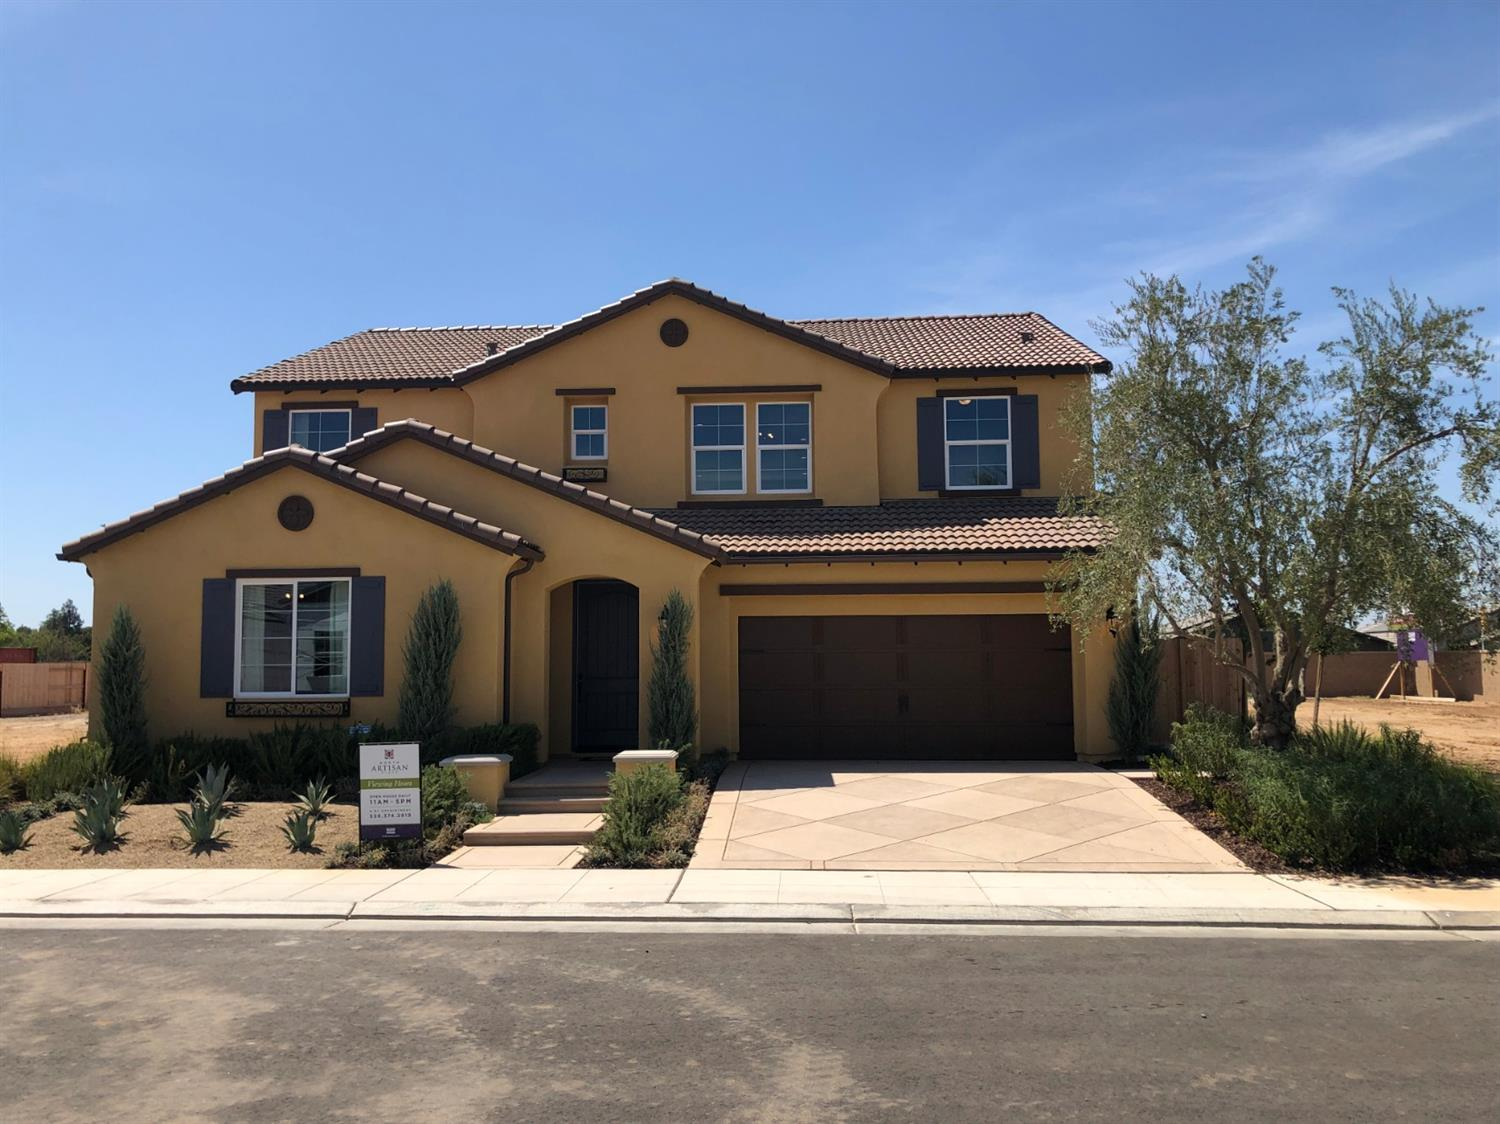 Don't miss this opportunity to own this immaculate model home built by Wathen Castanos in the Clovis North District. With true hardwood floors, designer picked dual kitchen countertops, quartz throughout every bathroom, hand textured 2 tone paint, and rod iron railing just to start! Become the first owner of this amazing home. Visit us at either of our welcome centers at Barstow/Dewolf or Locan/Shepard to view this home.  Virtual Tour Link: https://my.matterport.com/show/?m=h9qD2A7G5gP&utm_source=4